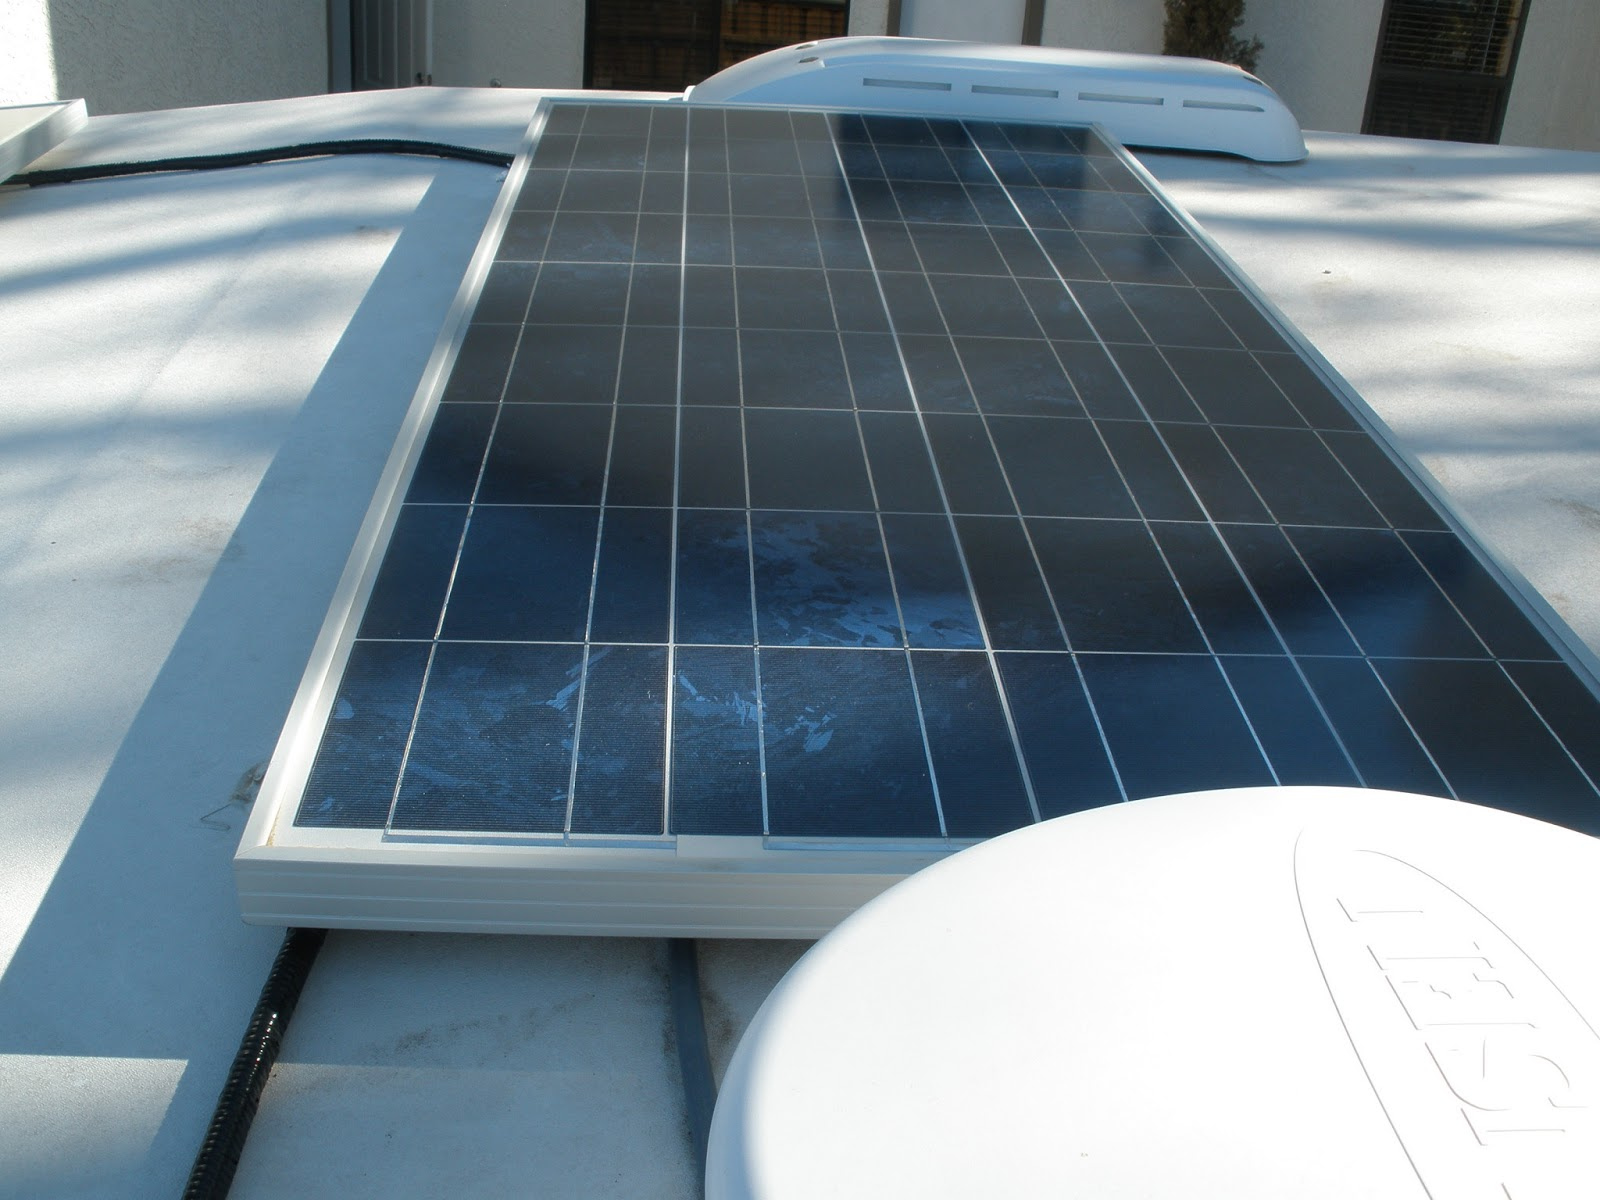 Rv Solar Panel And Roof Maintenance Truck Camper Adventure